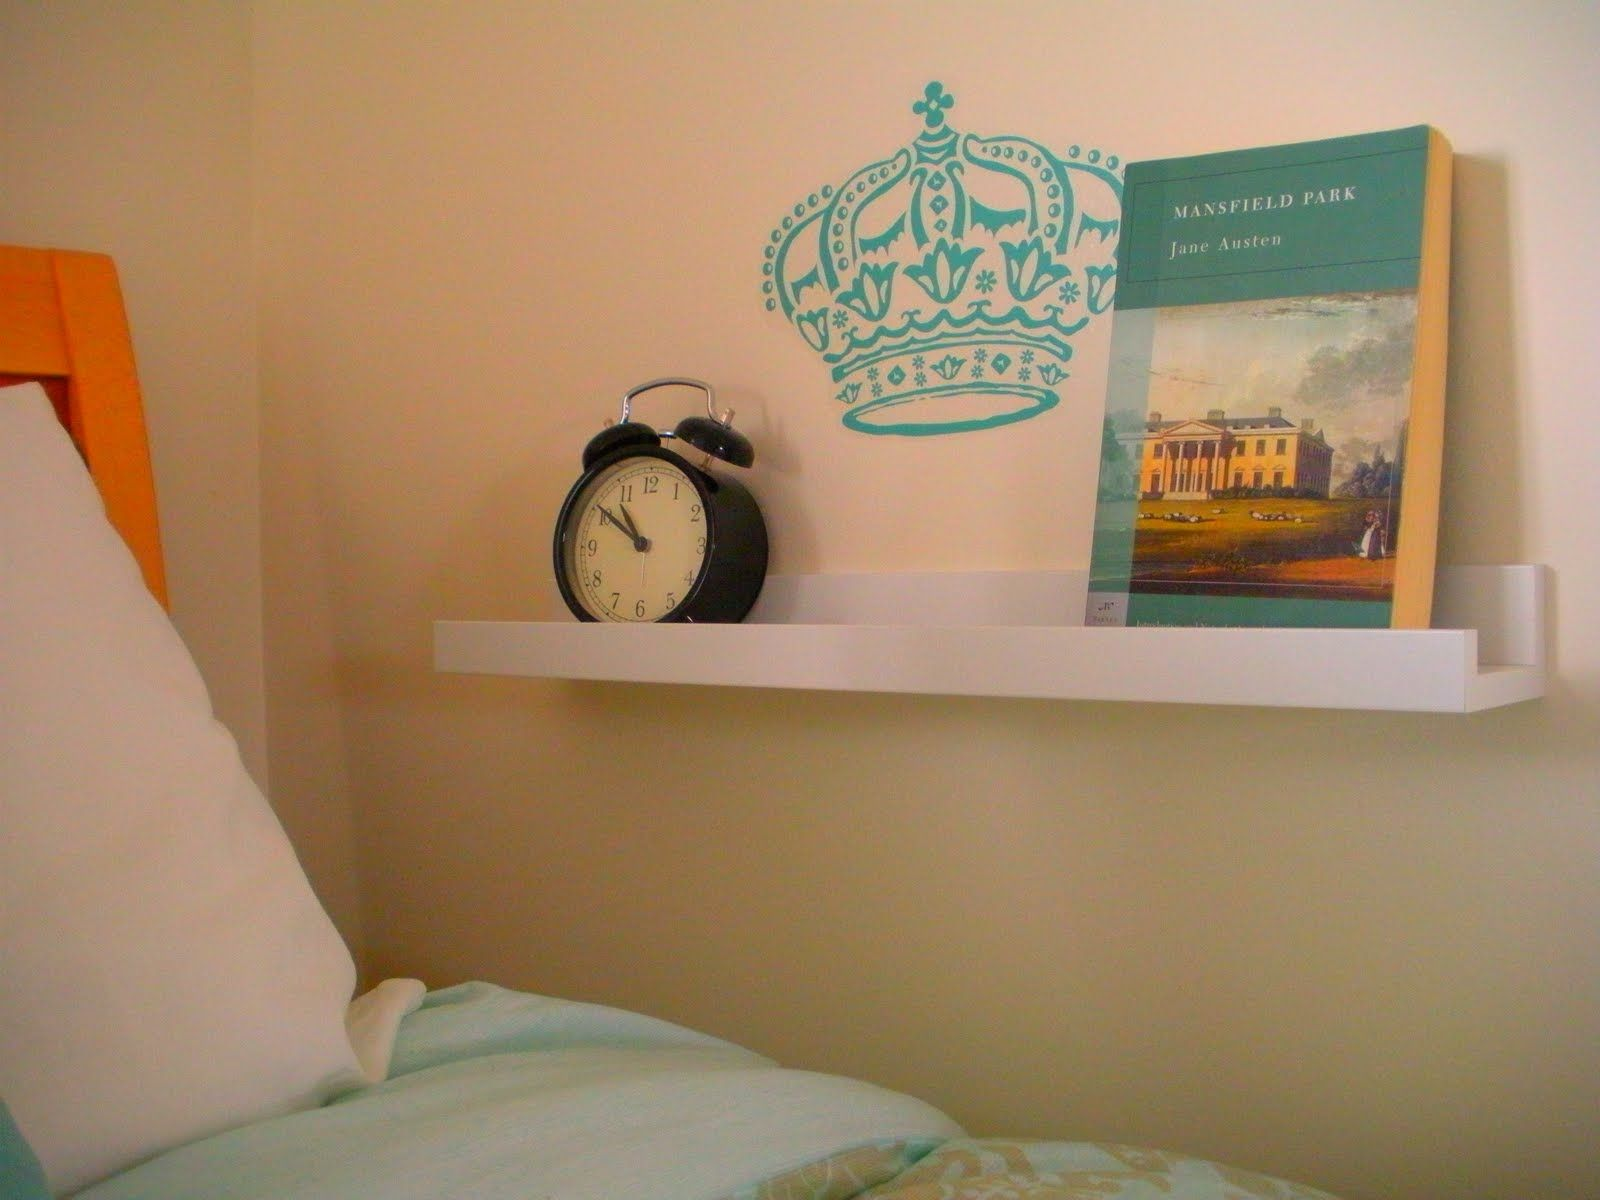 ikea ribba picture ledge in the bedroom as a